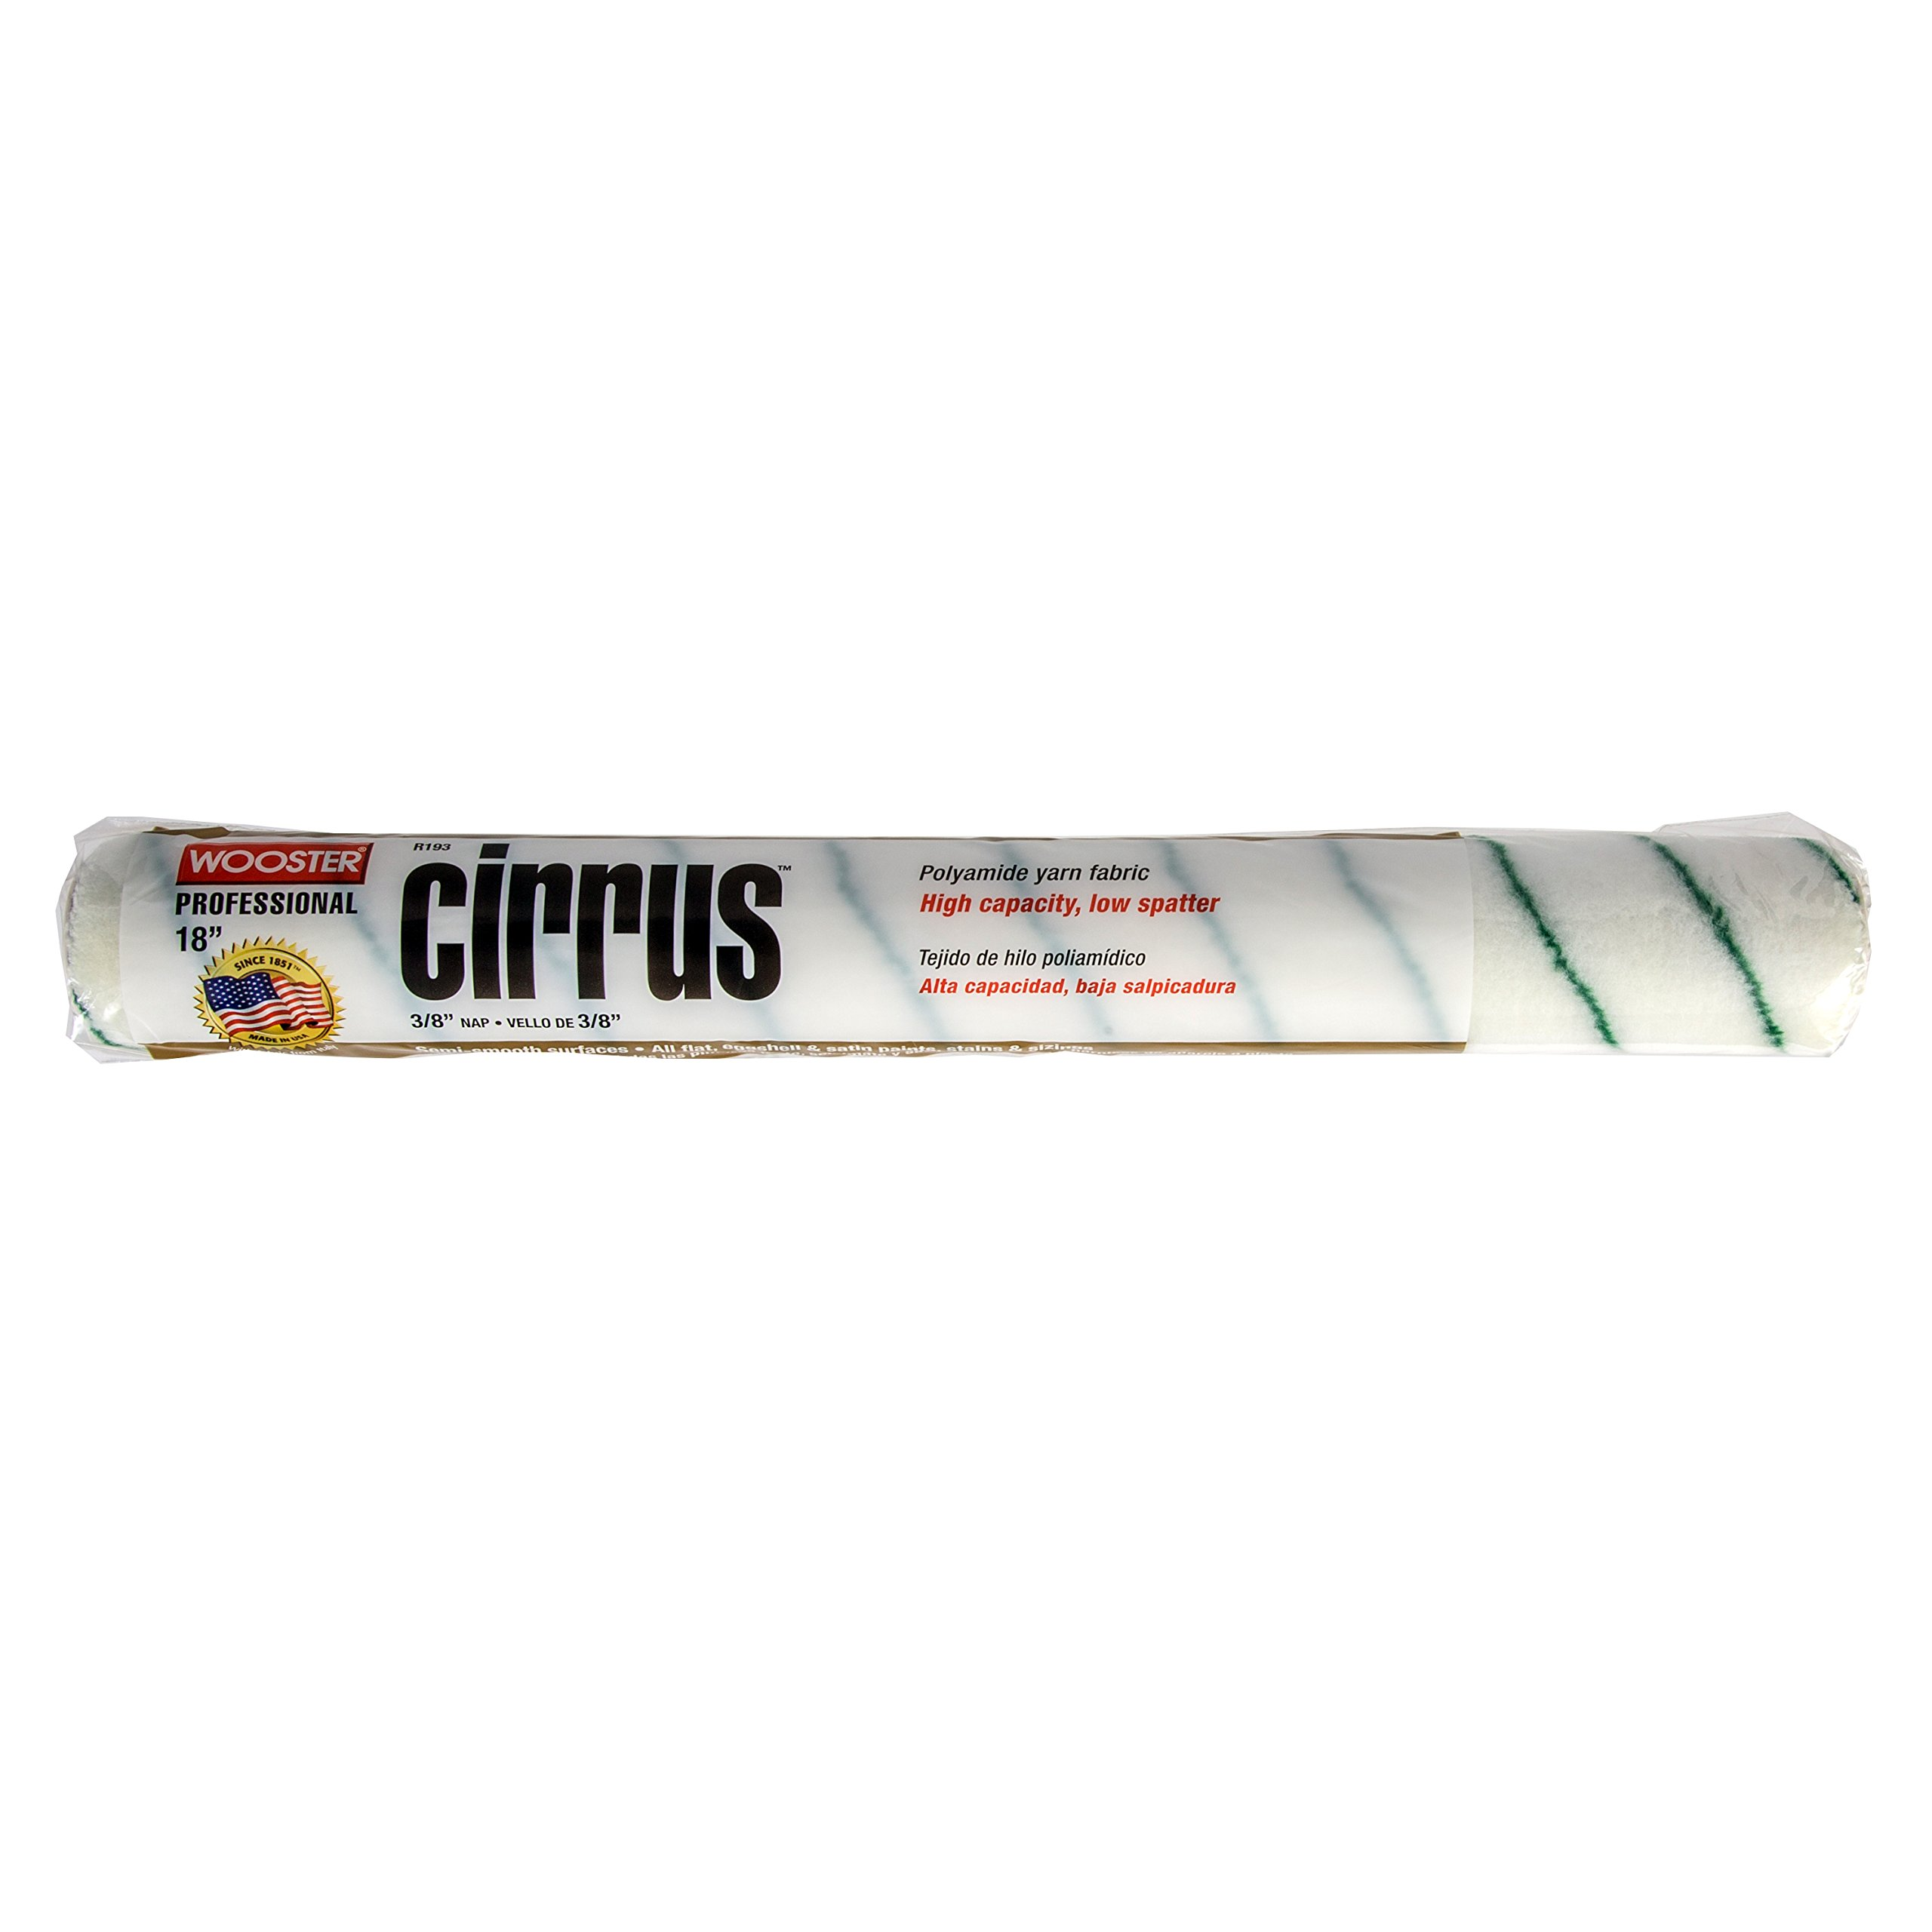 Wooster Brush R193-18 Cirrus Nap Roller, 3/8-Inch